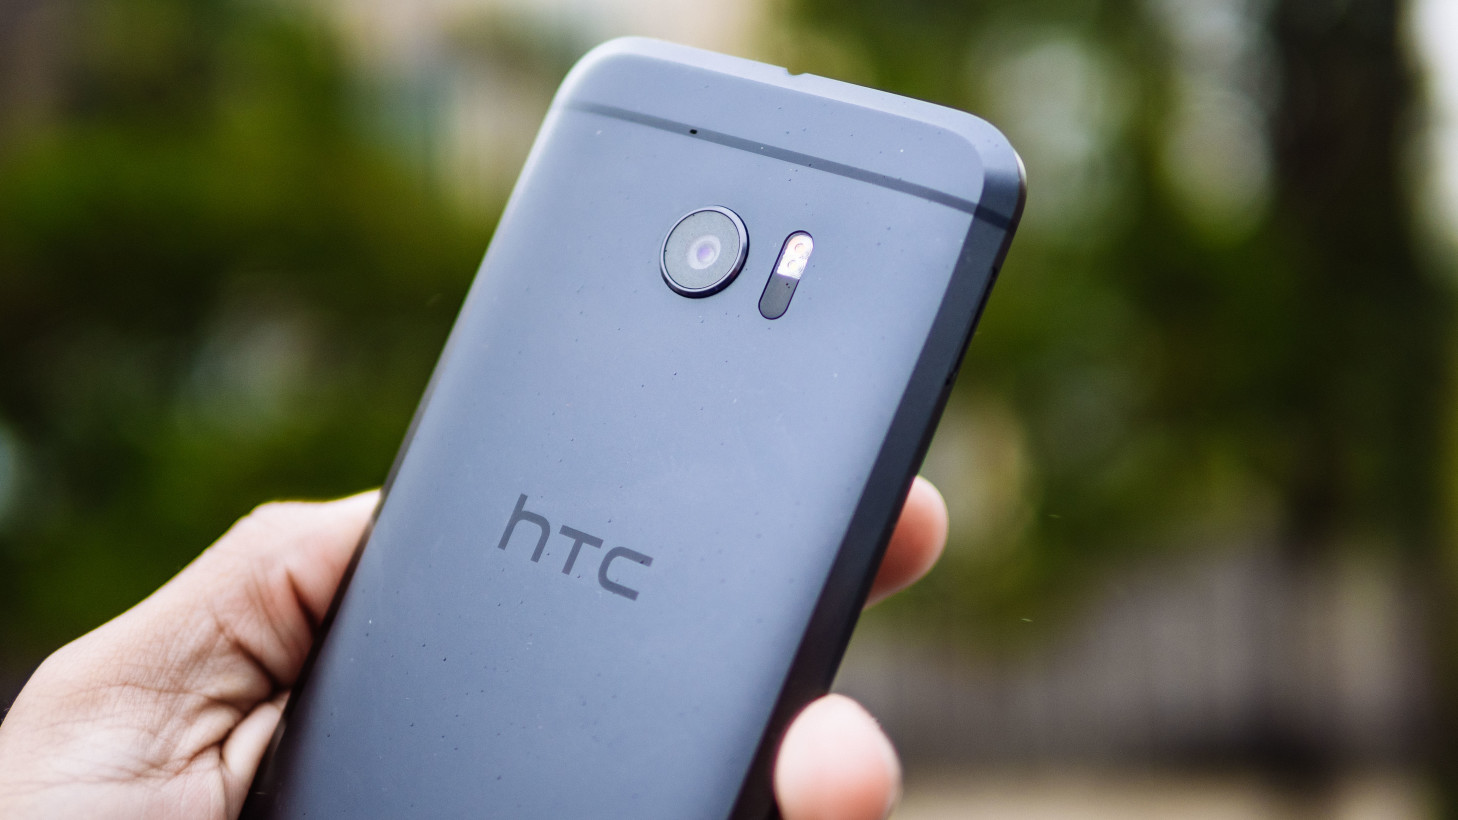 The HTC 10 looks refined and feels great in hand.